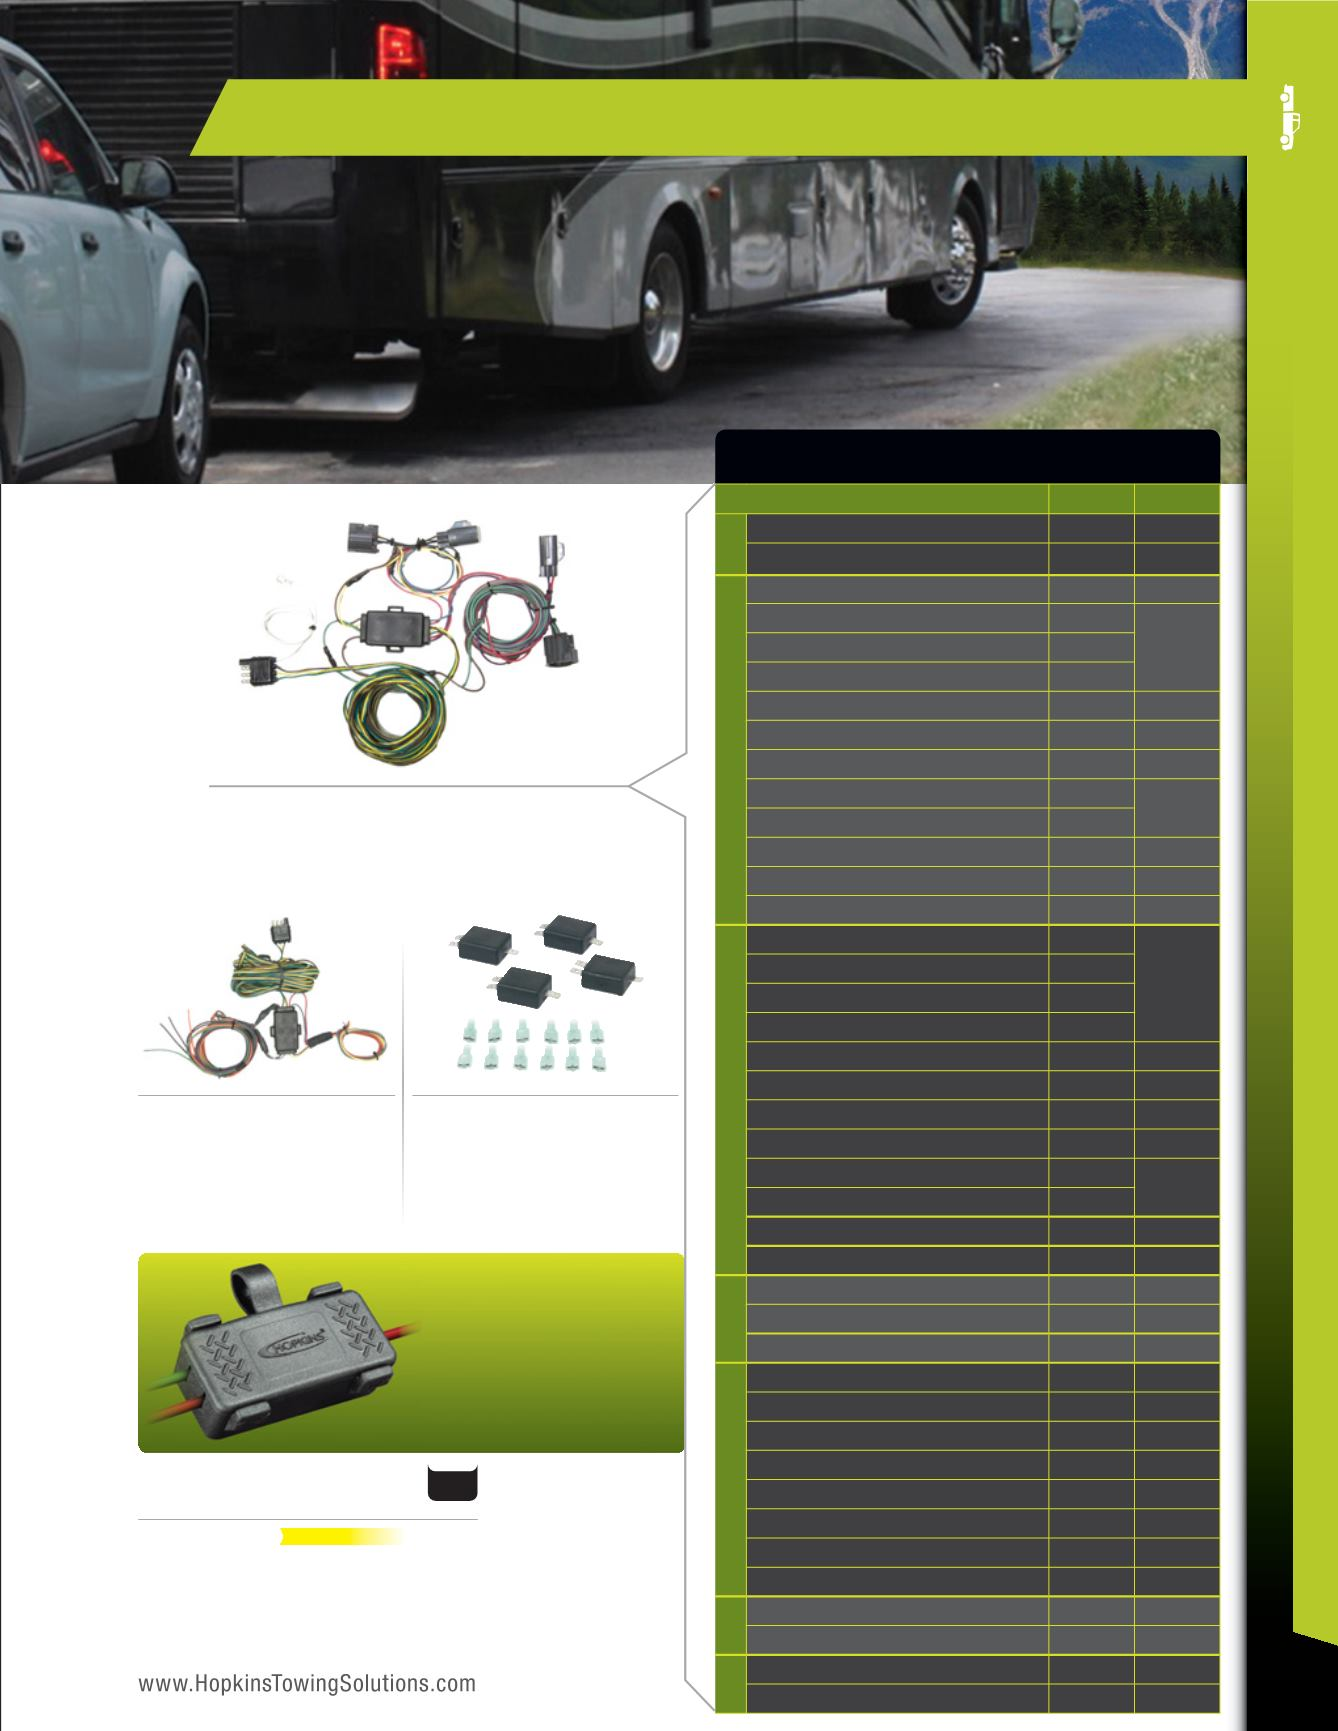 Hopkins Owing Product Guide 2014 Towed Vehicle Wiring Kit Kits